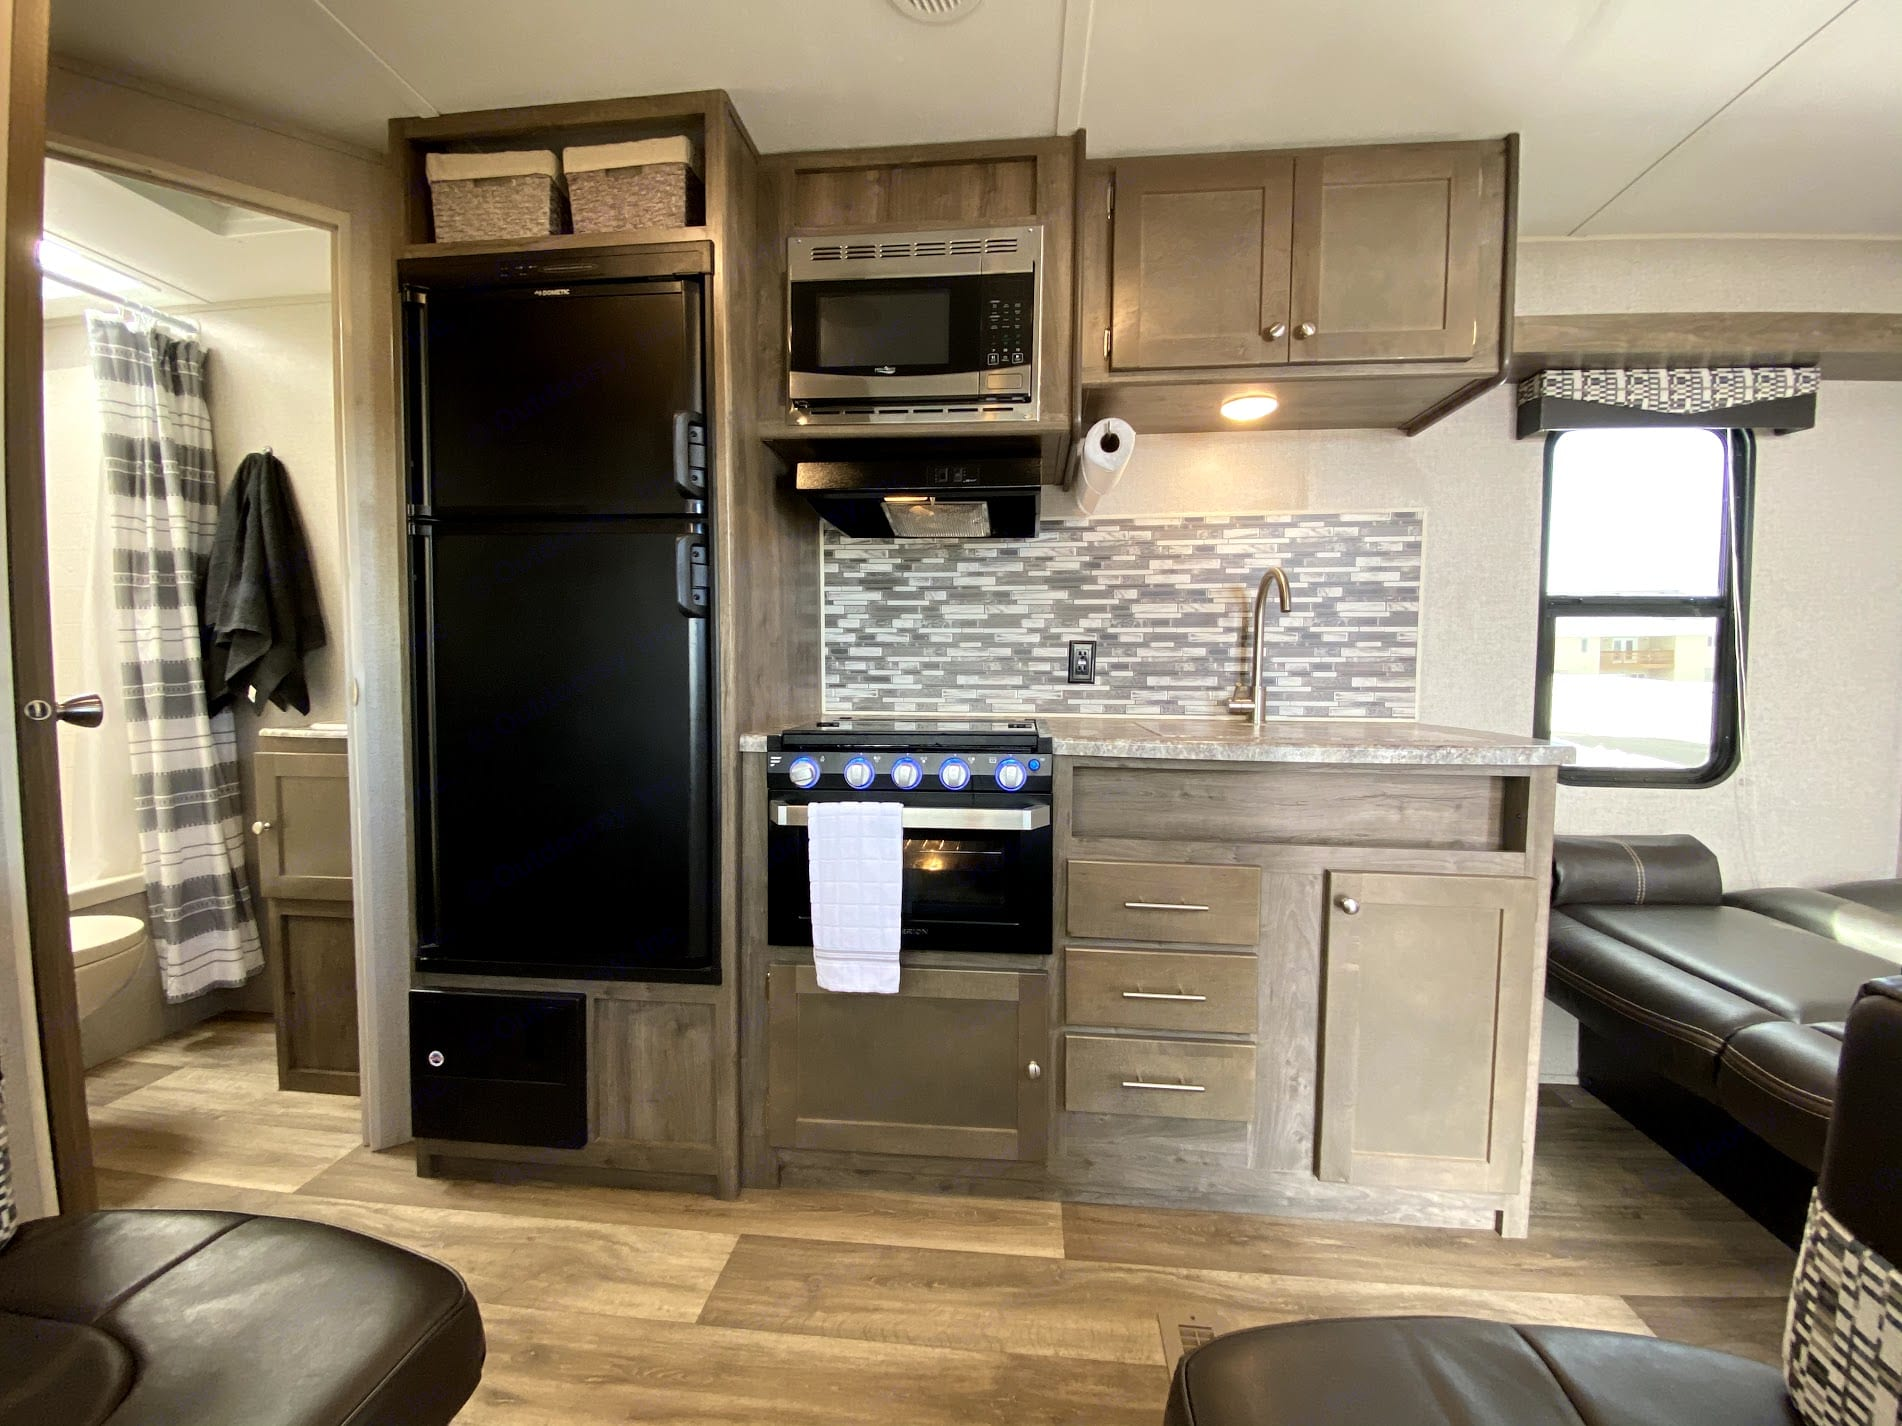 The kitchen is equipped with a sink, stove/oven, microwave and a fridge/freezer. . Dutchmen Aspen Trail 2019